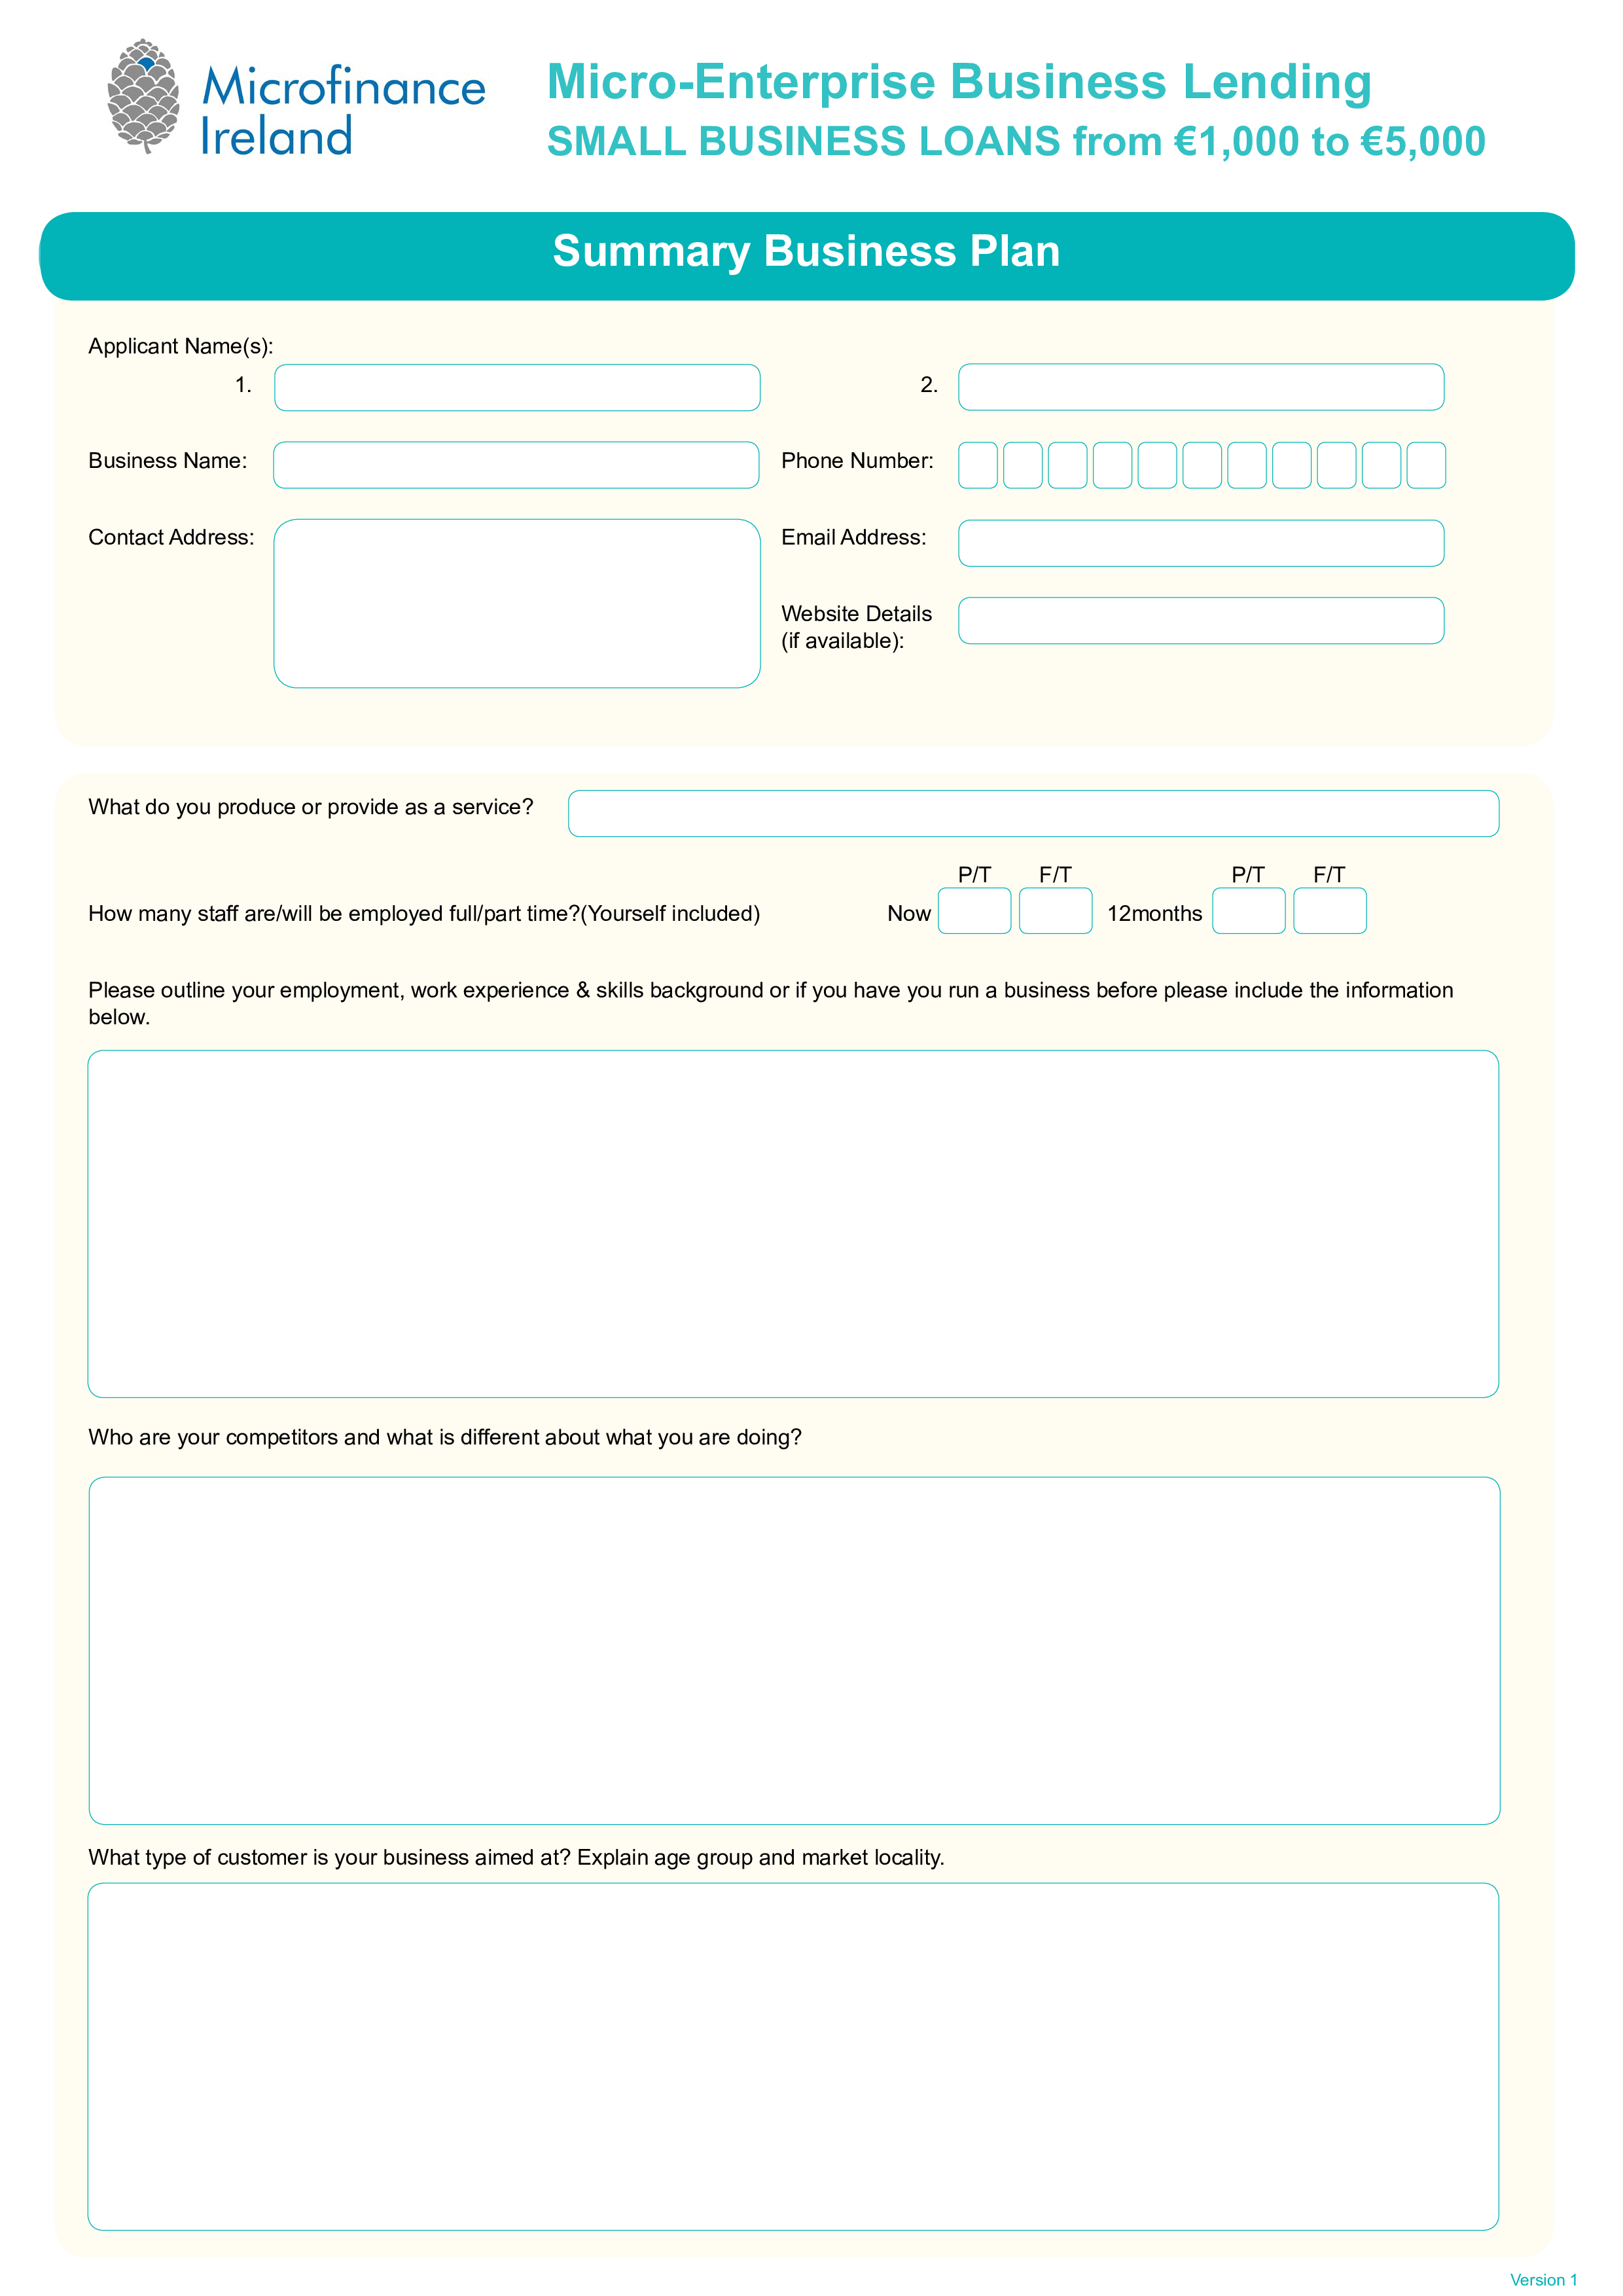 Free small business loan plan templates at allbusinesstemplates small business loan plan main image download template friedricerecipe Images